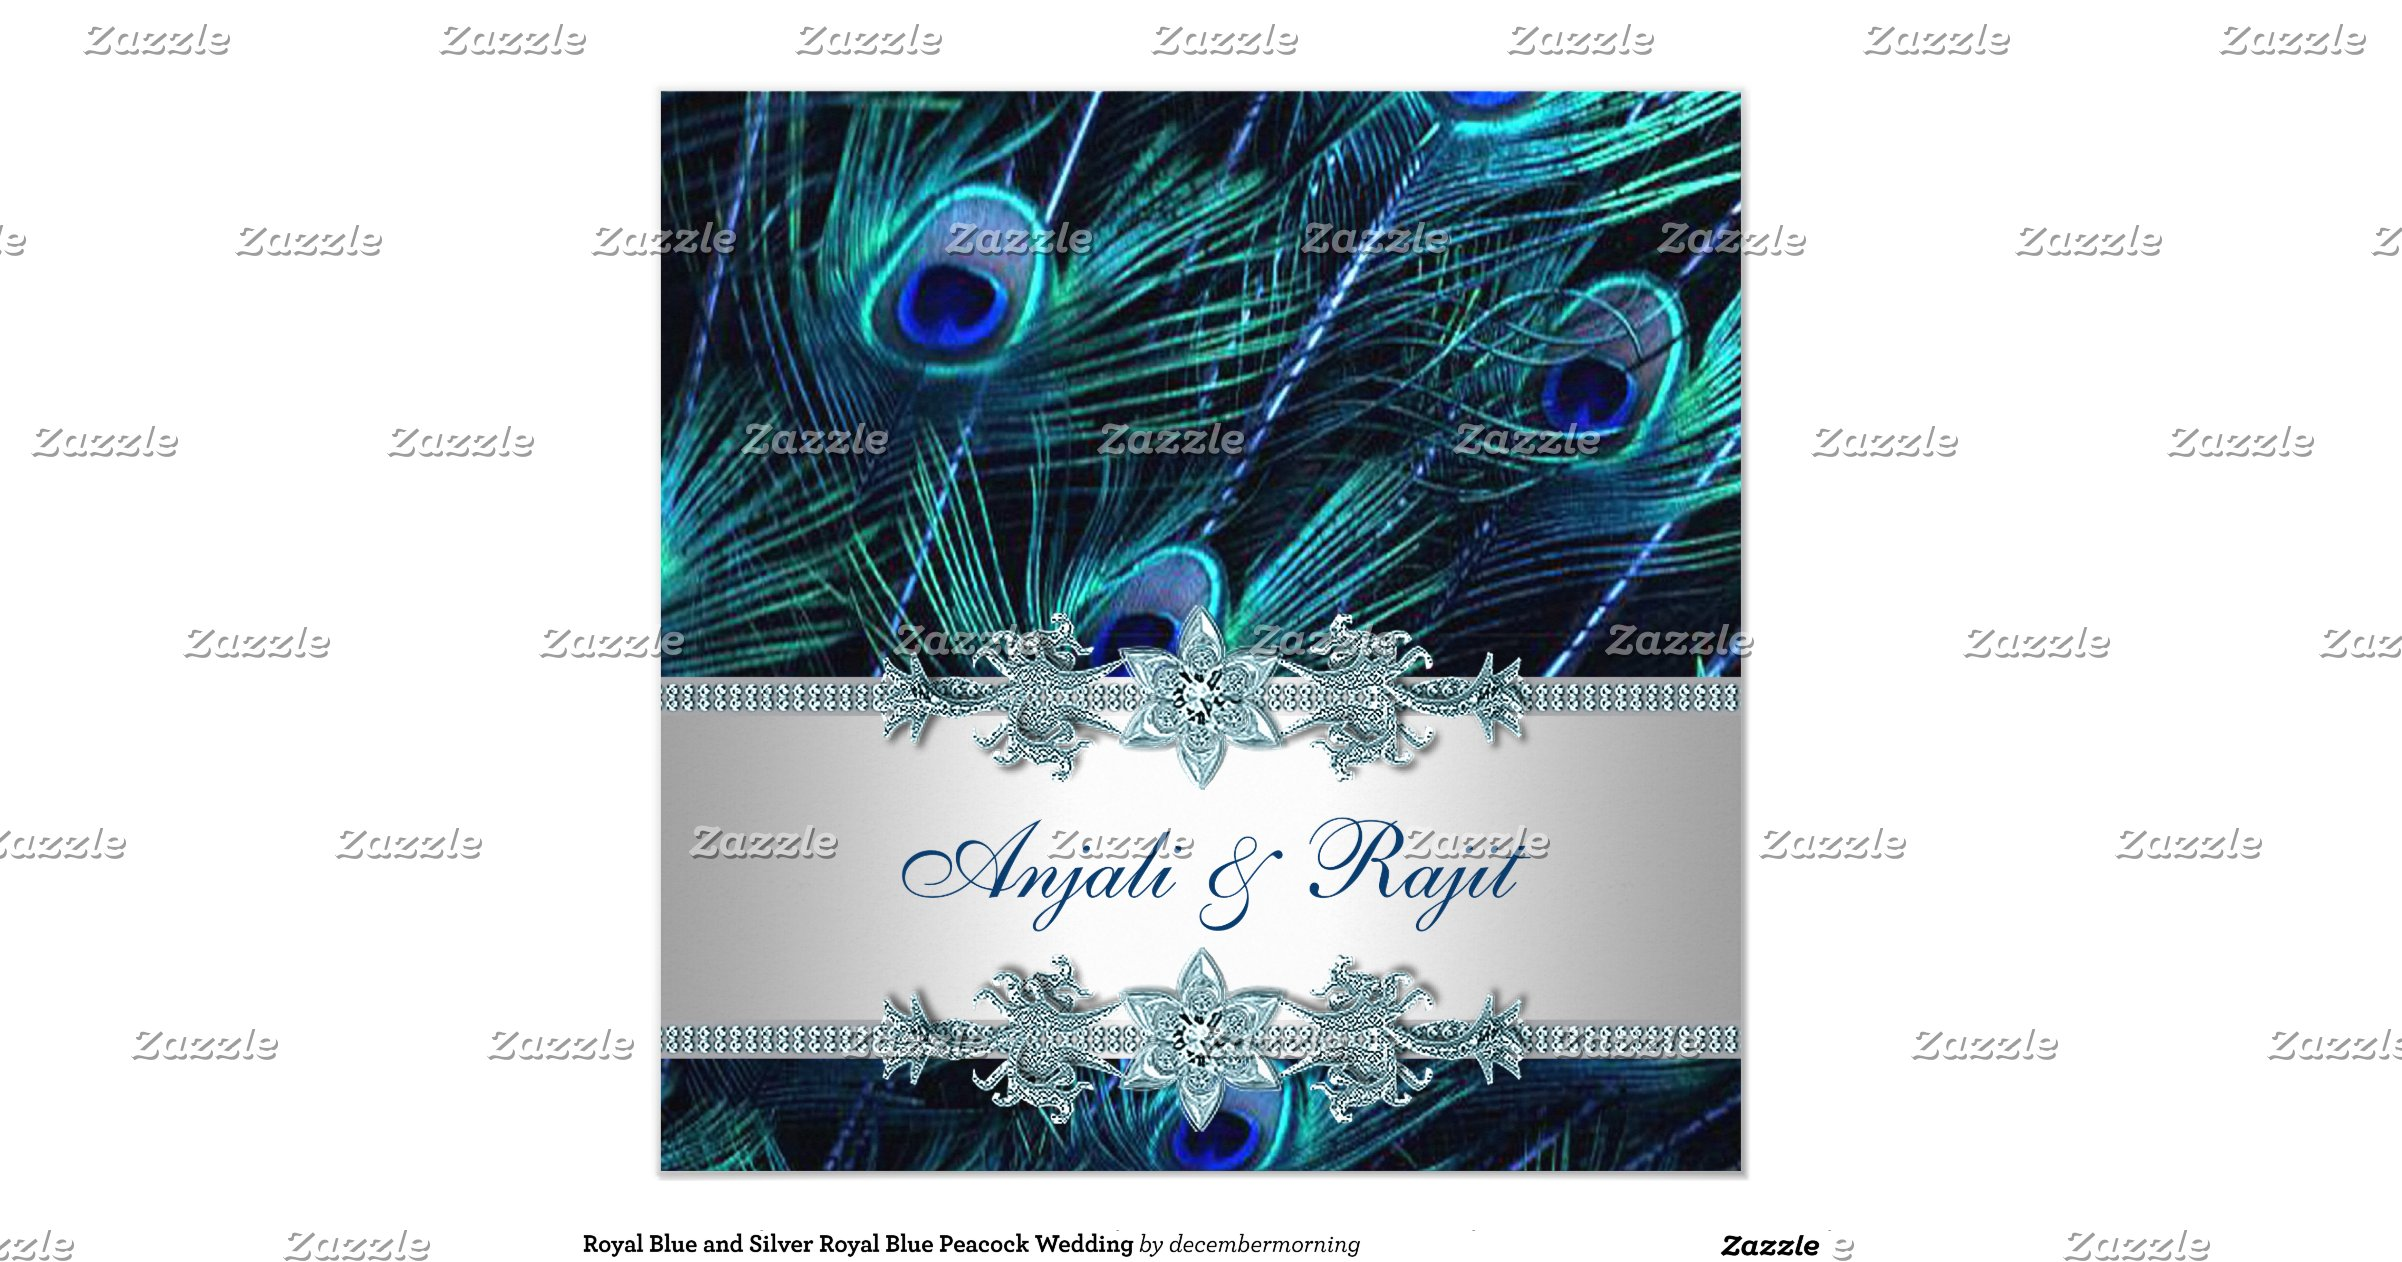 Wedding Invitations Royal Blue And Silver: Royal_blue_and_silver_royal_blue_peacock_wedding